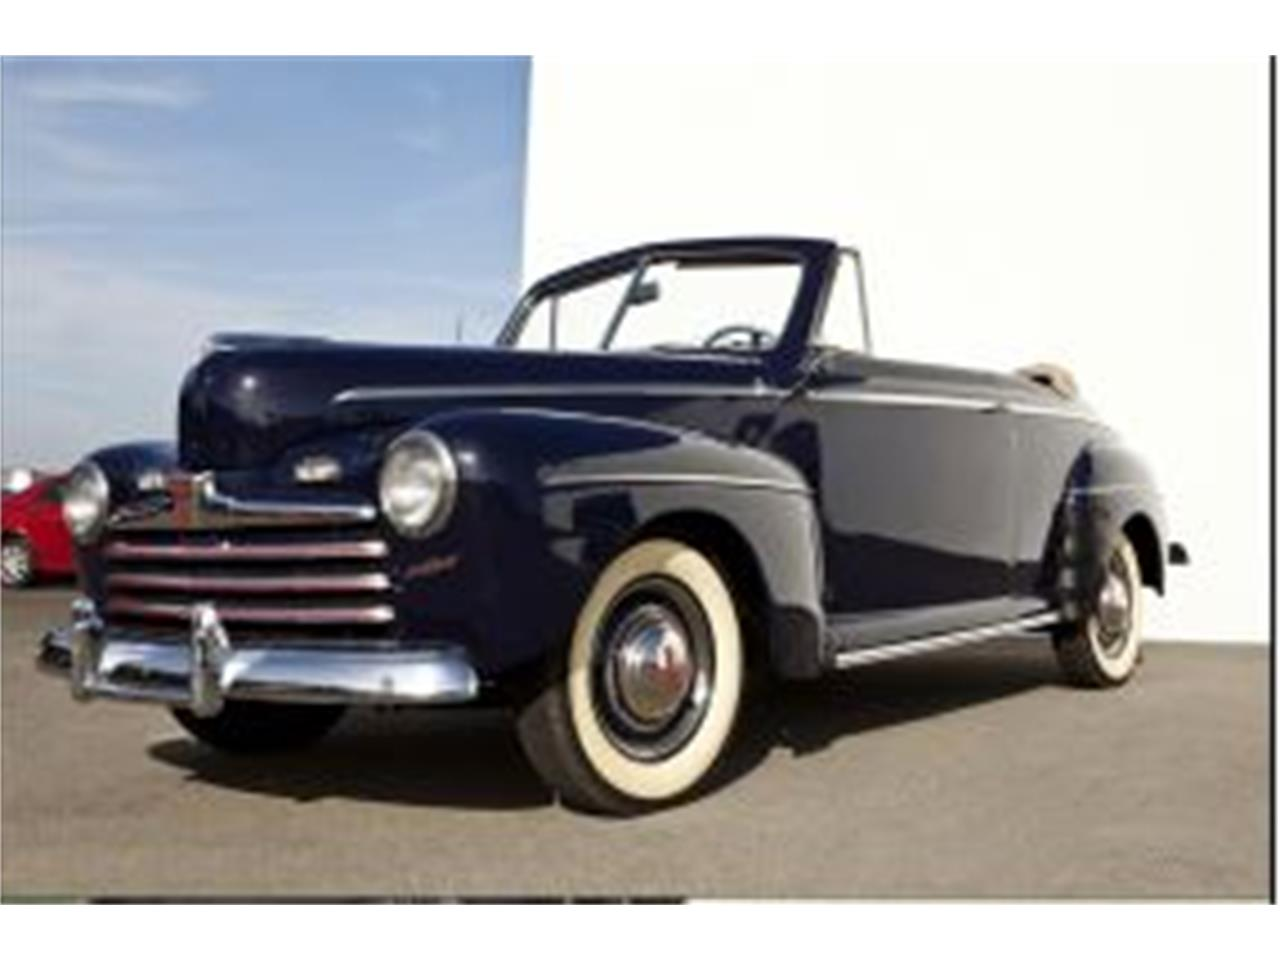 Ford Super Deluxe Convertible Specs Photos Videos And More On Topworldauto